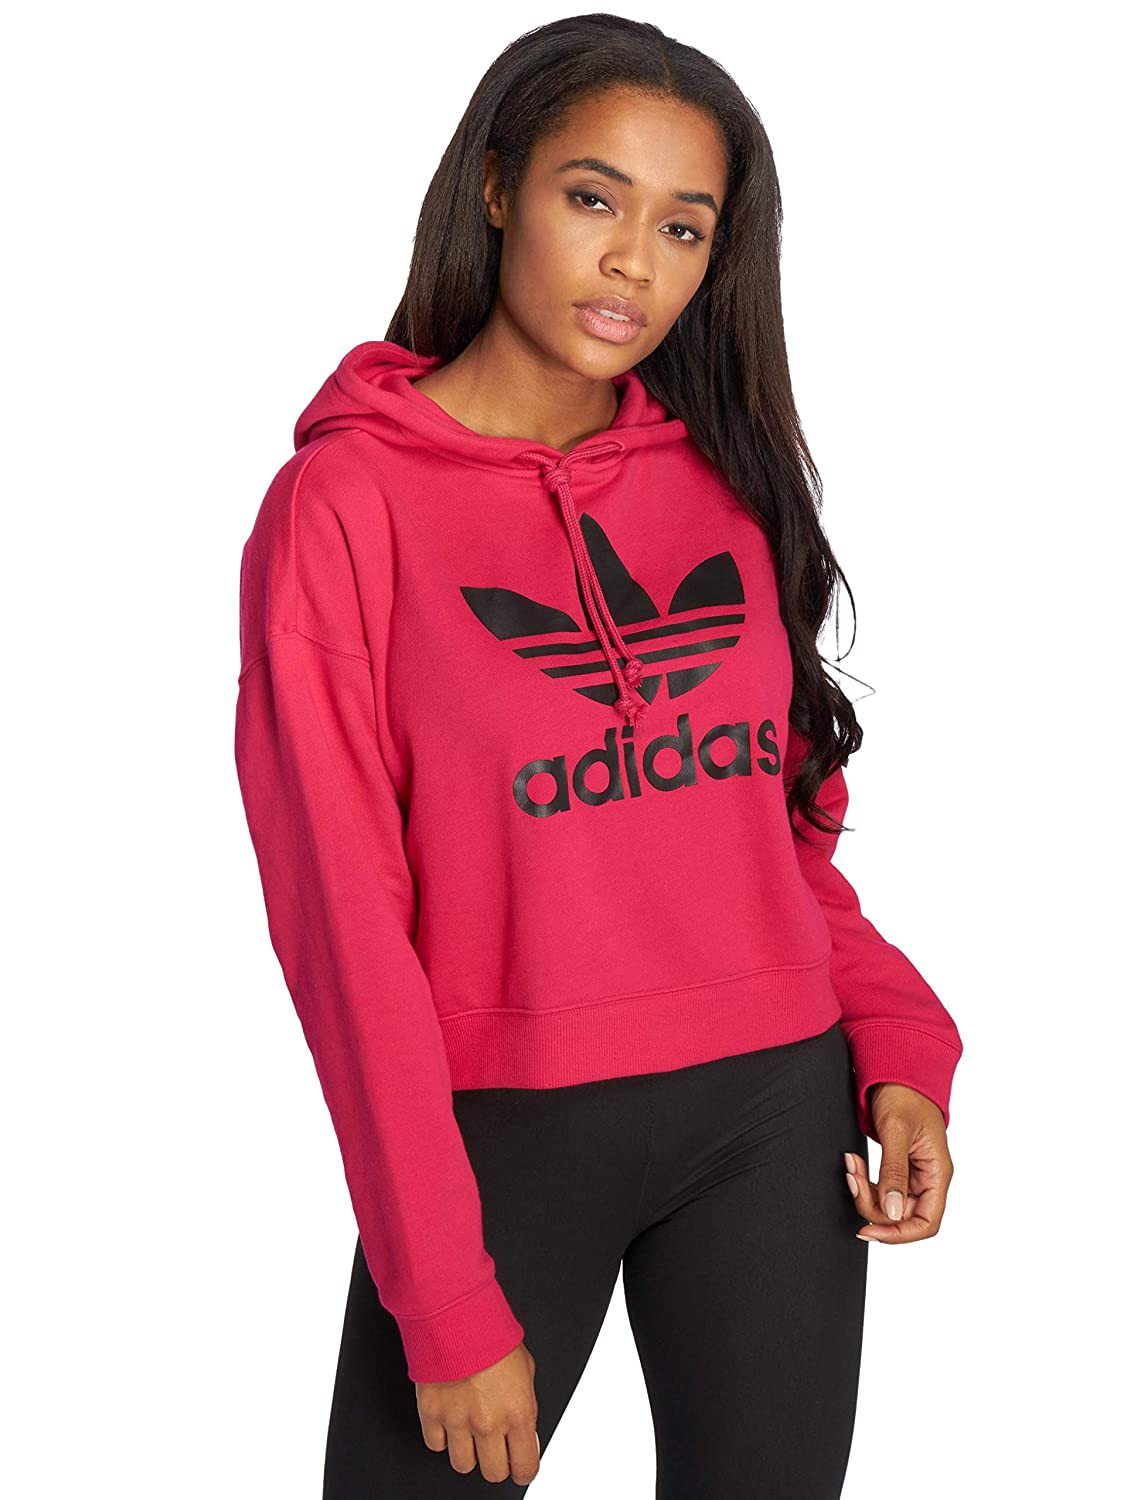 adidas Originals Damen Hoodies LF Crop pink 38: